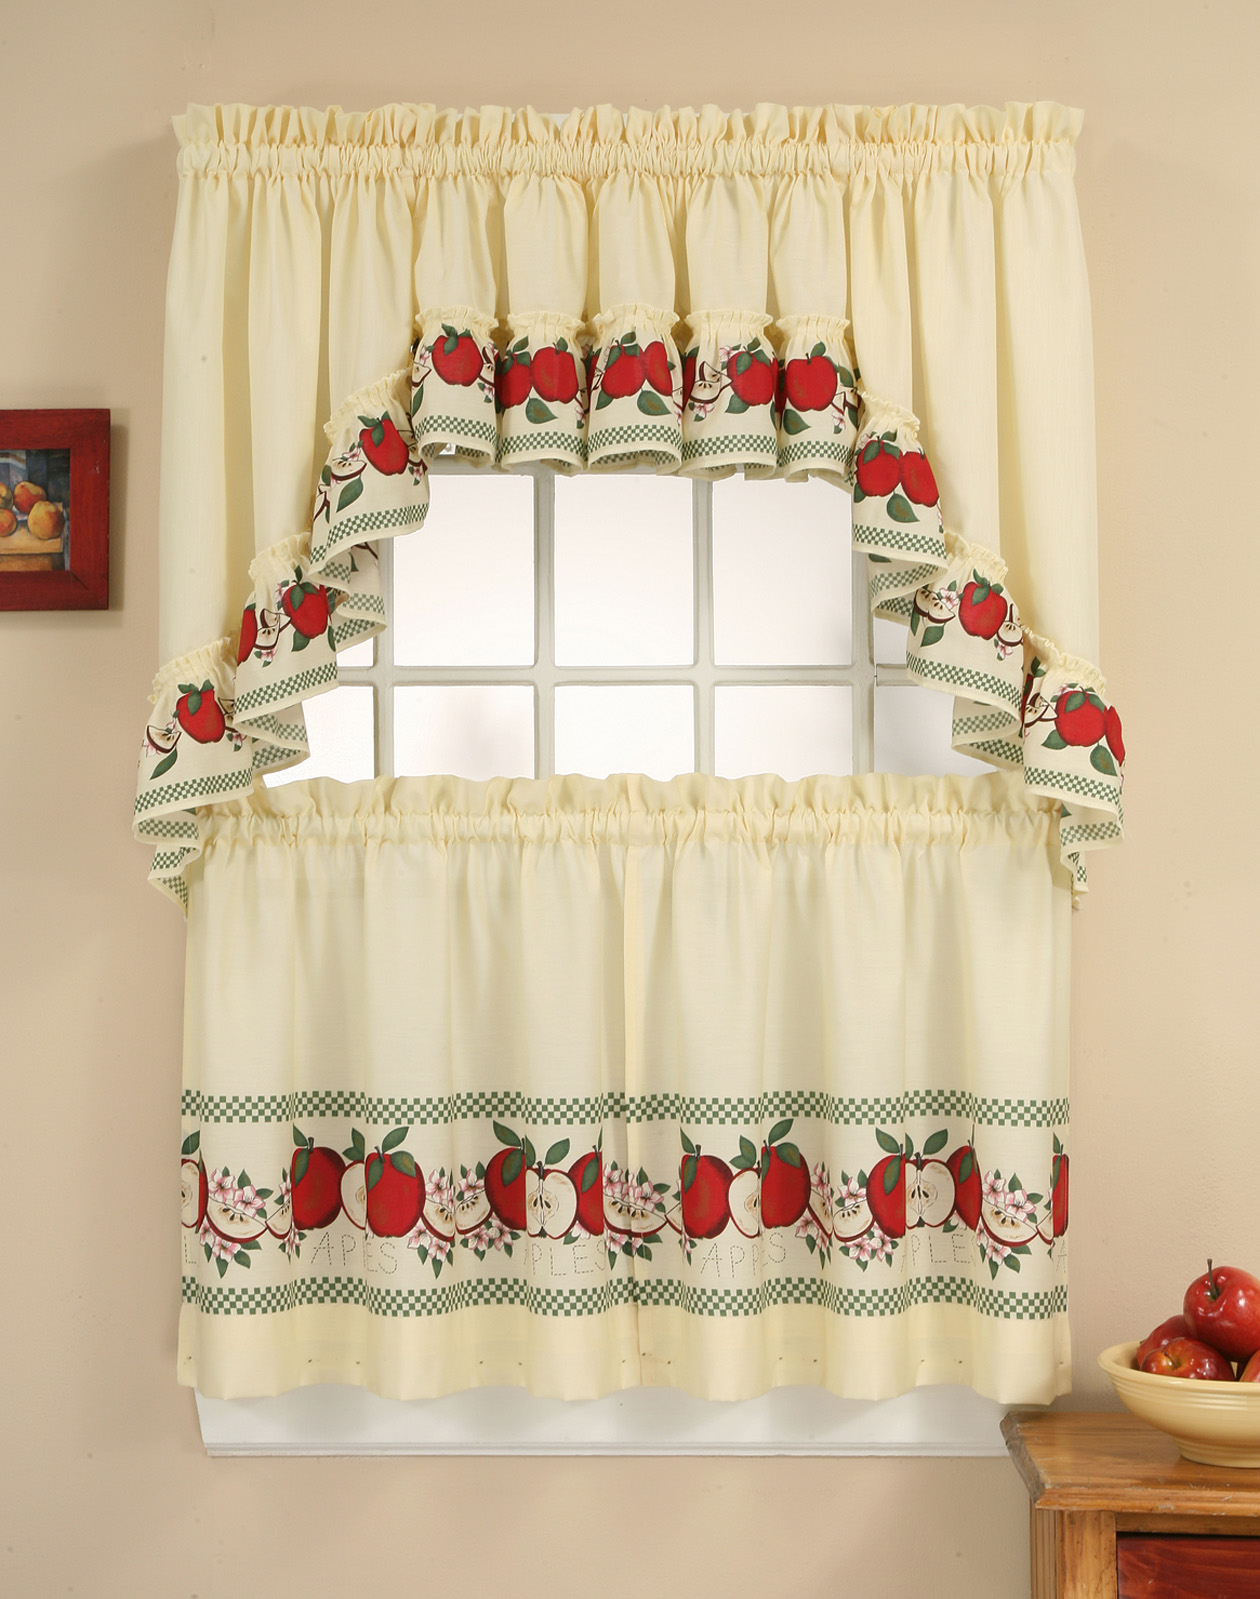 Apple Wall Decor Kitchen Apple Decorations For Kitchen Walls Wallen Kitchen Walls Apple